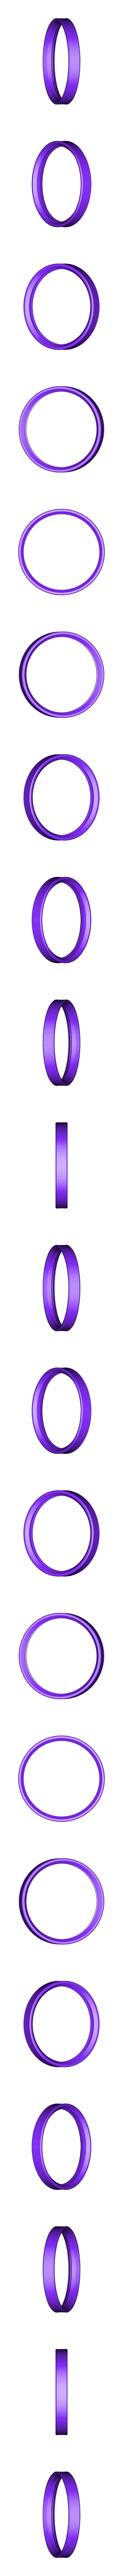 Ring_repaired.stl Download free STL file LED Ring Lamp Build • Object to 3D print, Adylinn